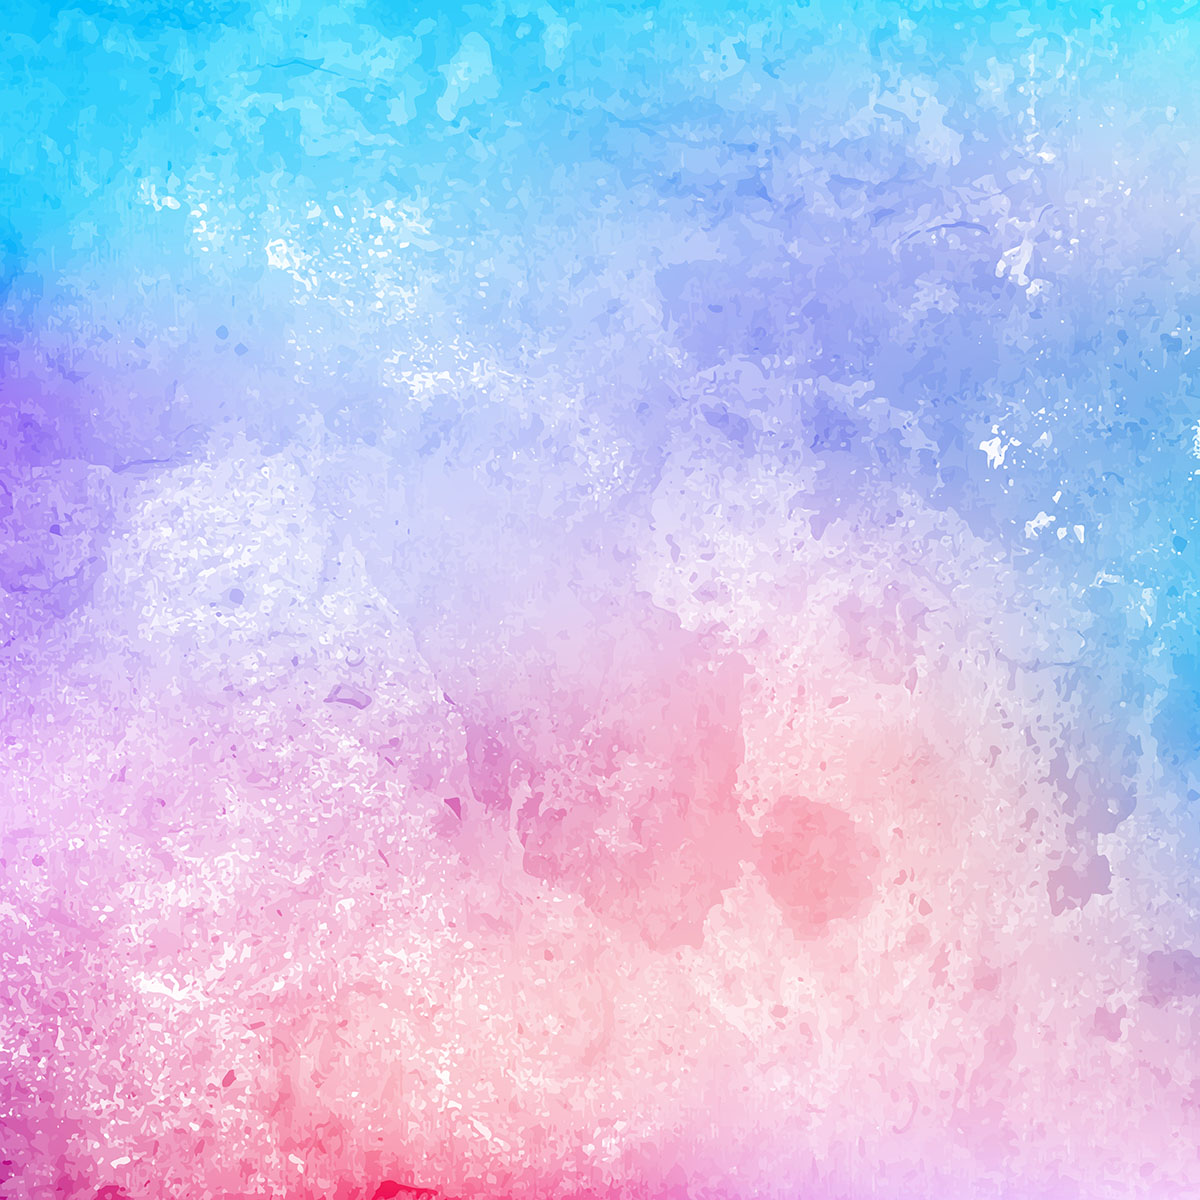 Grunge watercolor texture background - Download Free ...